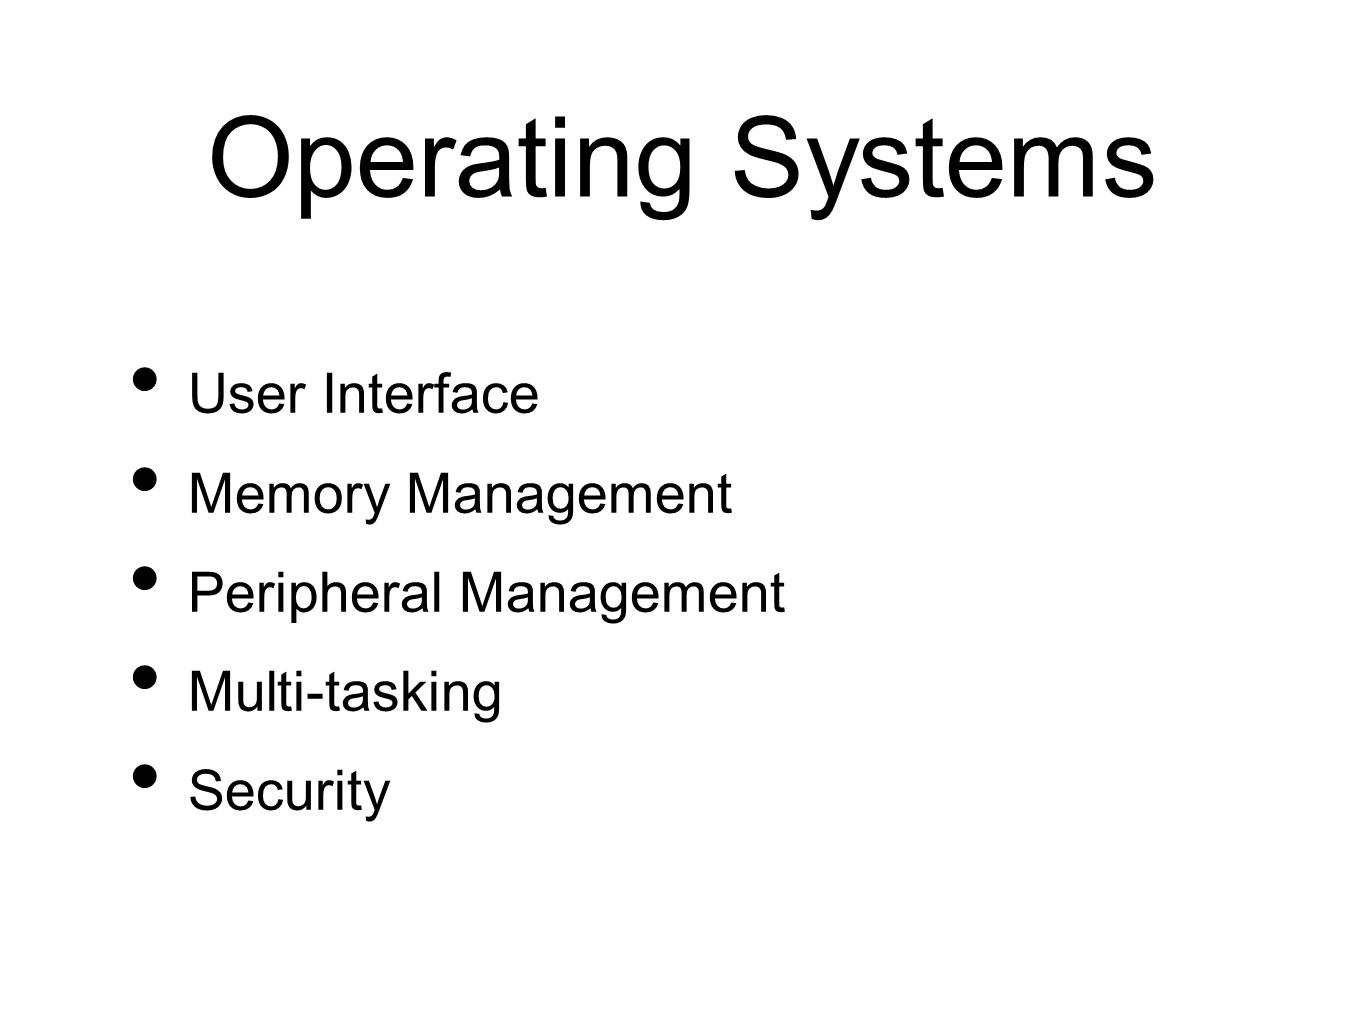 Operating Systems User Interface Memory Management Peripheral Management Multi-tasking Security